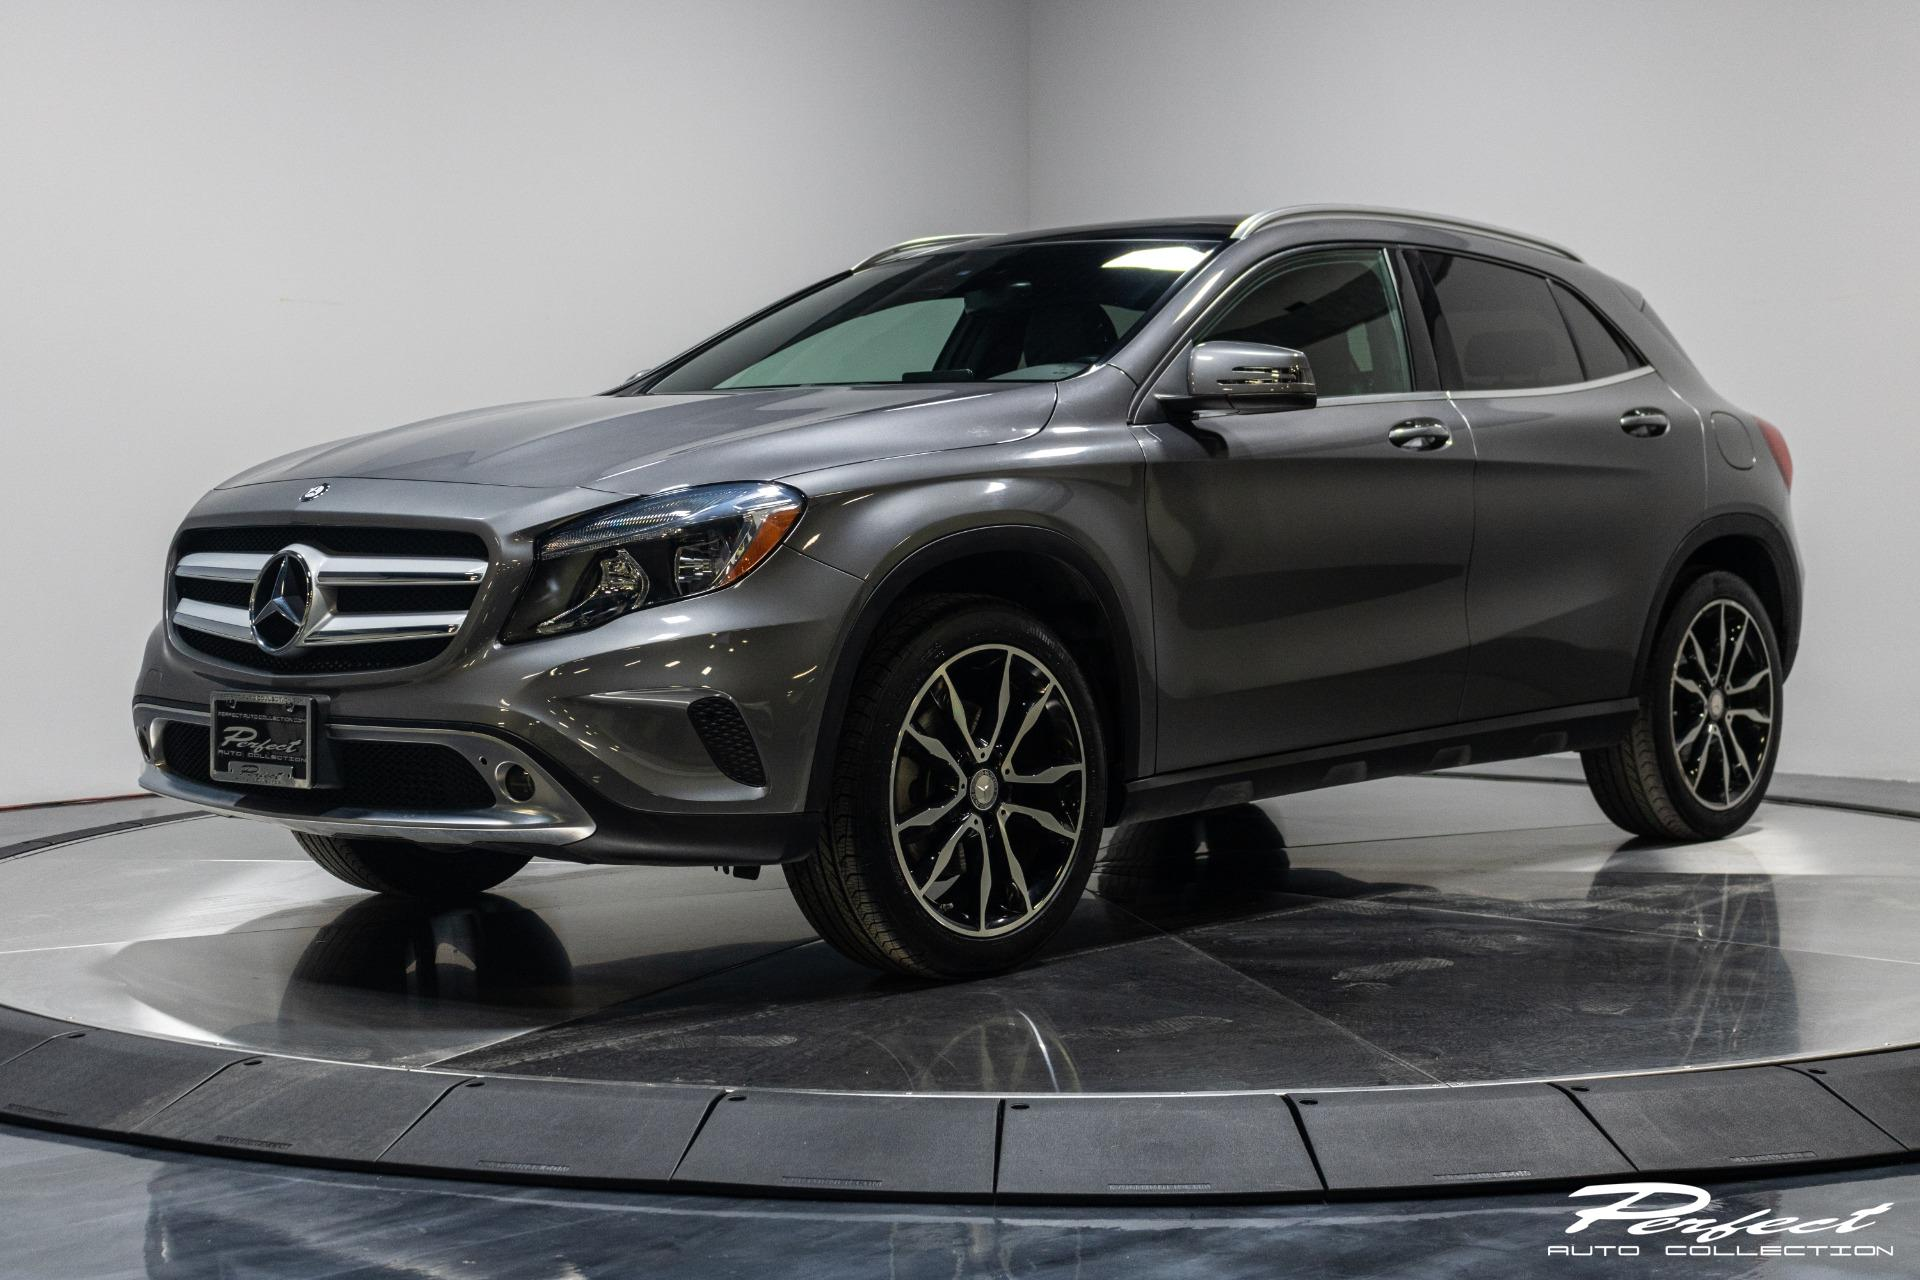 Used 2016 Mercedes-Benz GLA GLA 250 4MATIC for sale Sold at Perfect Auto Collection in Akron OH 44310 1